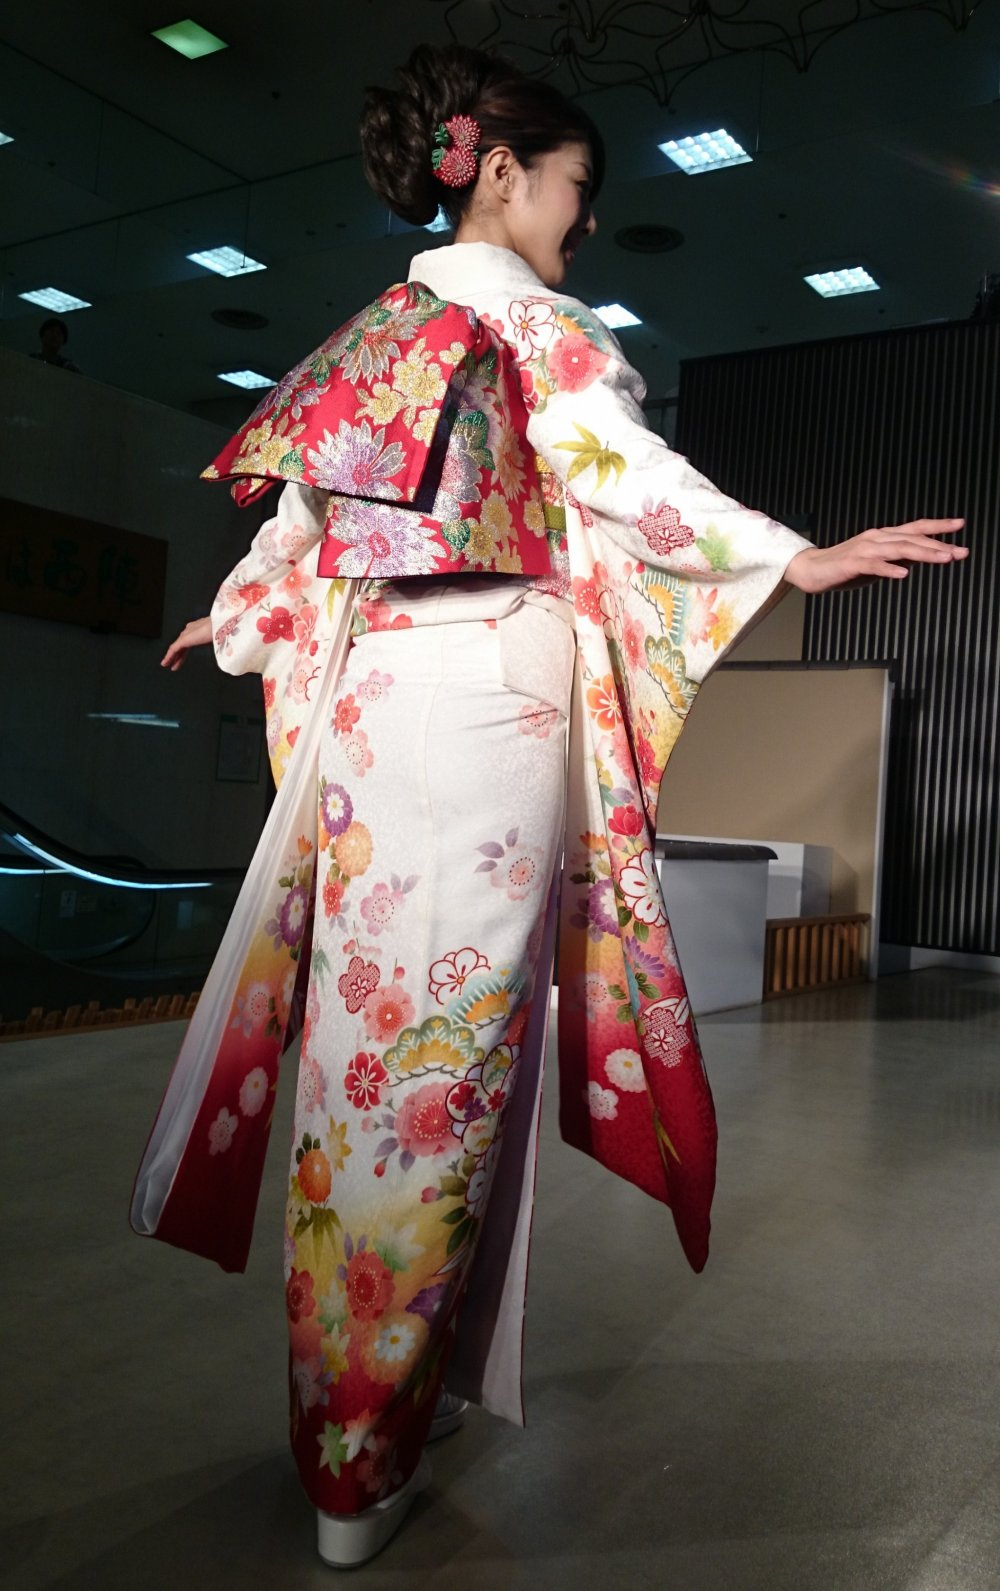 The floral design of the obi (tied at the back) distinctively recalls autumn colors